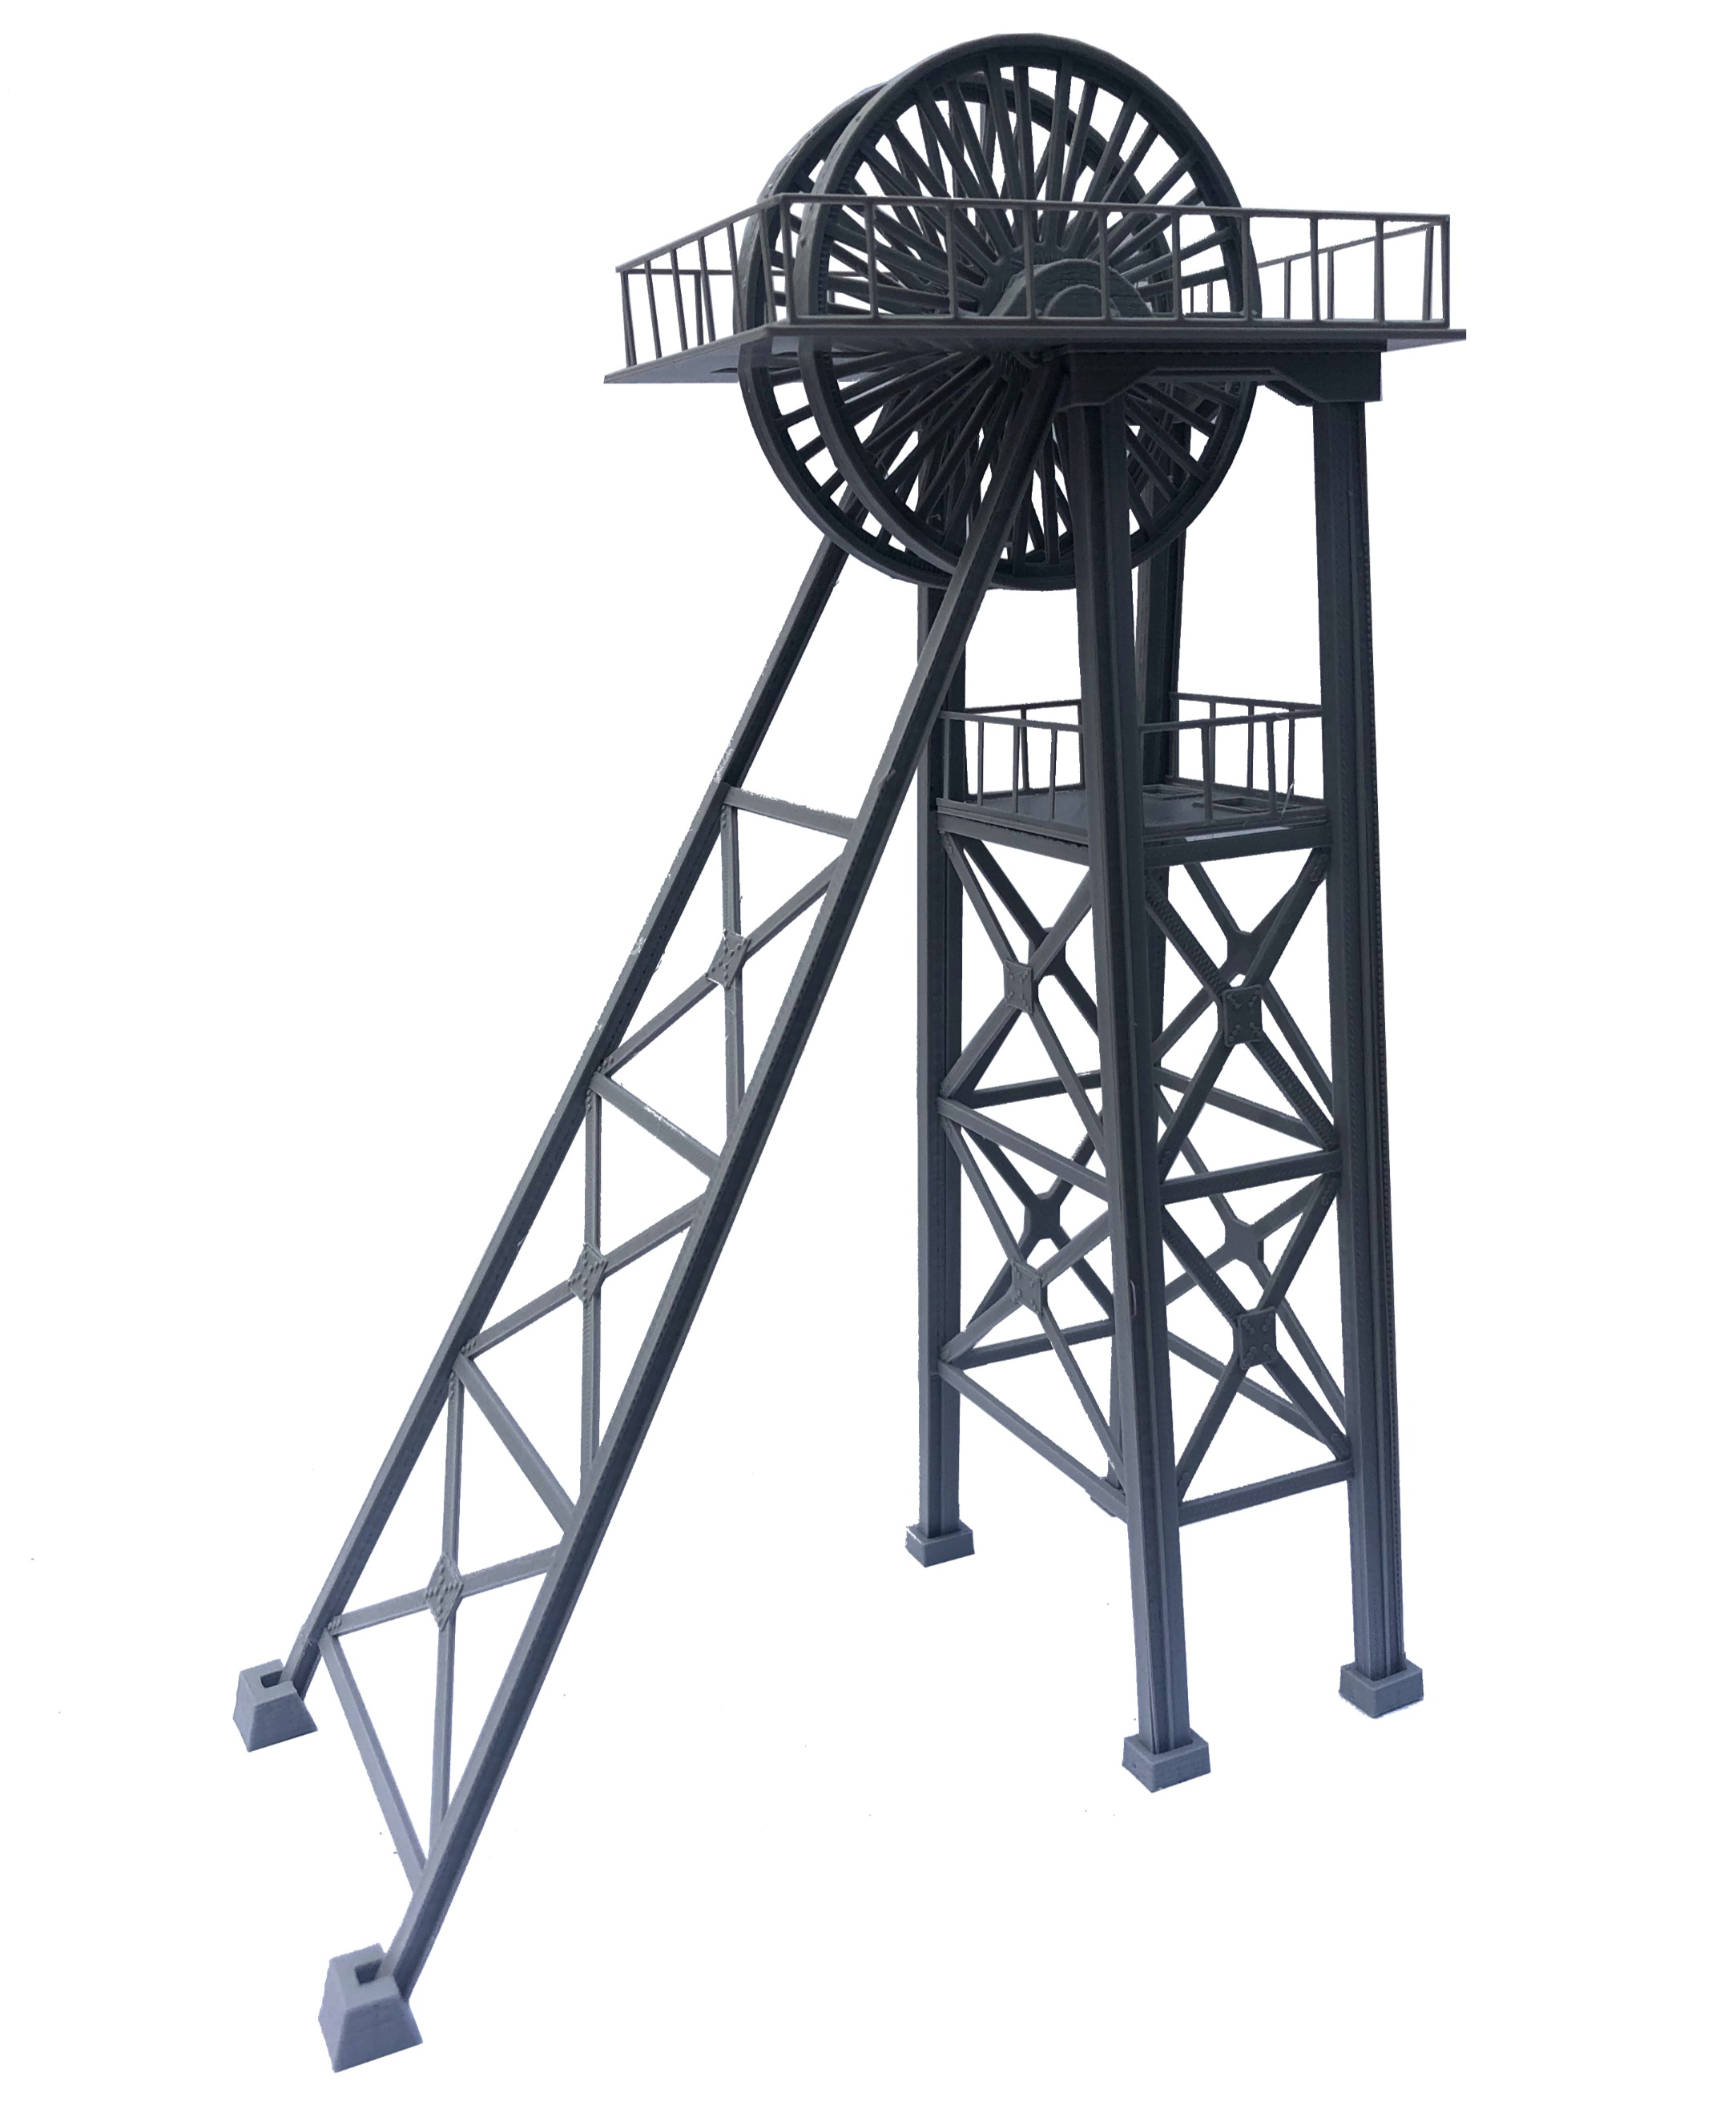 OO Mining Tower